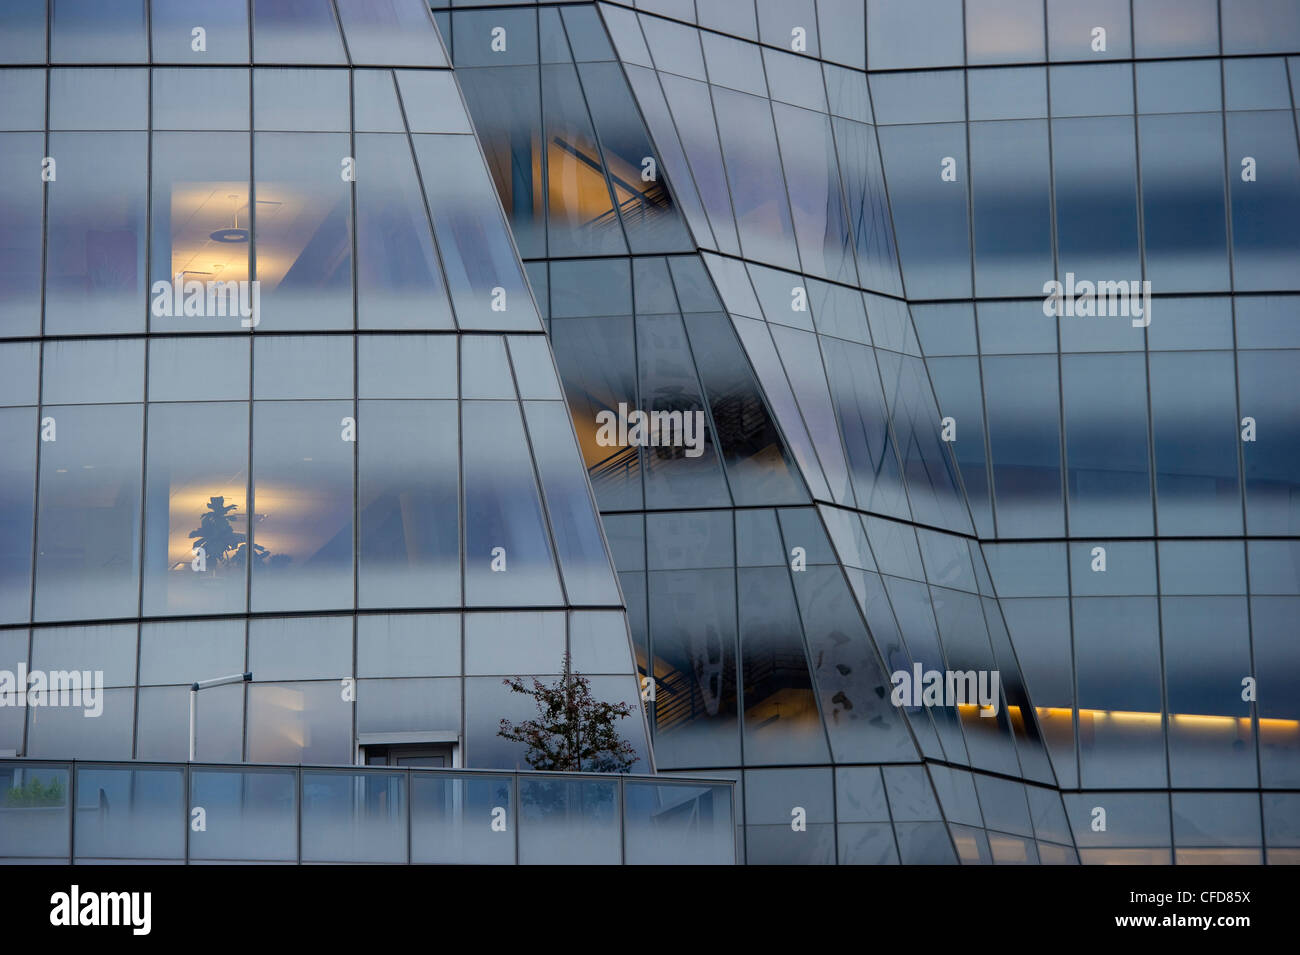 IAC Building, architekt Frank Gehry, Chelsea, Manhattan, New York, USA - Stock Image